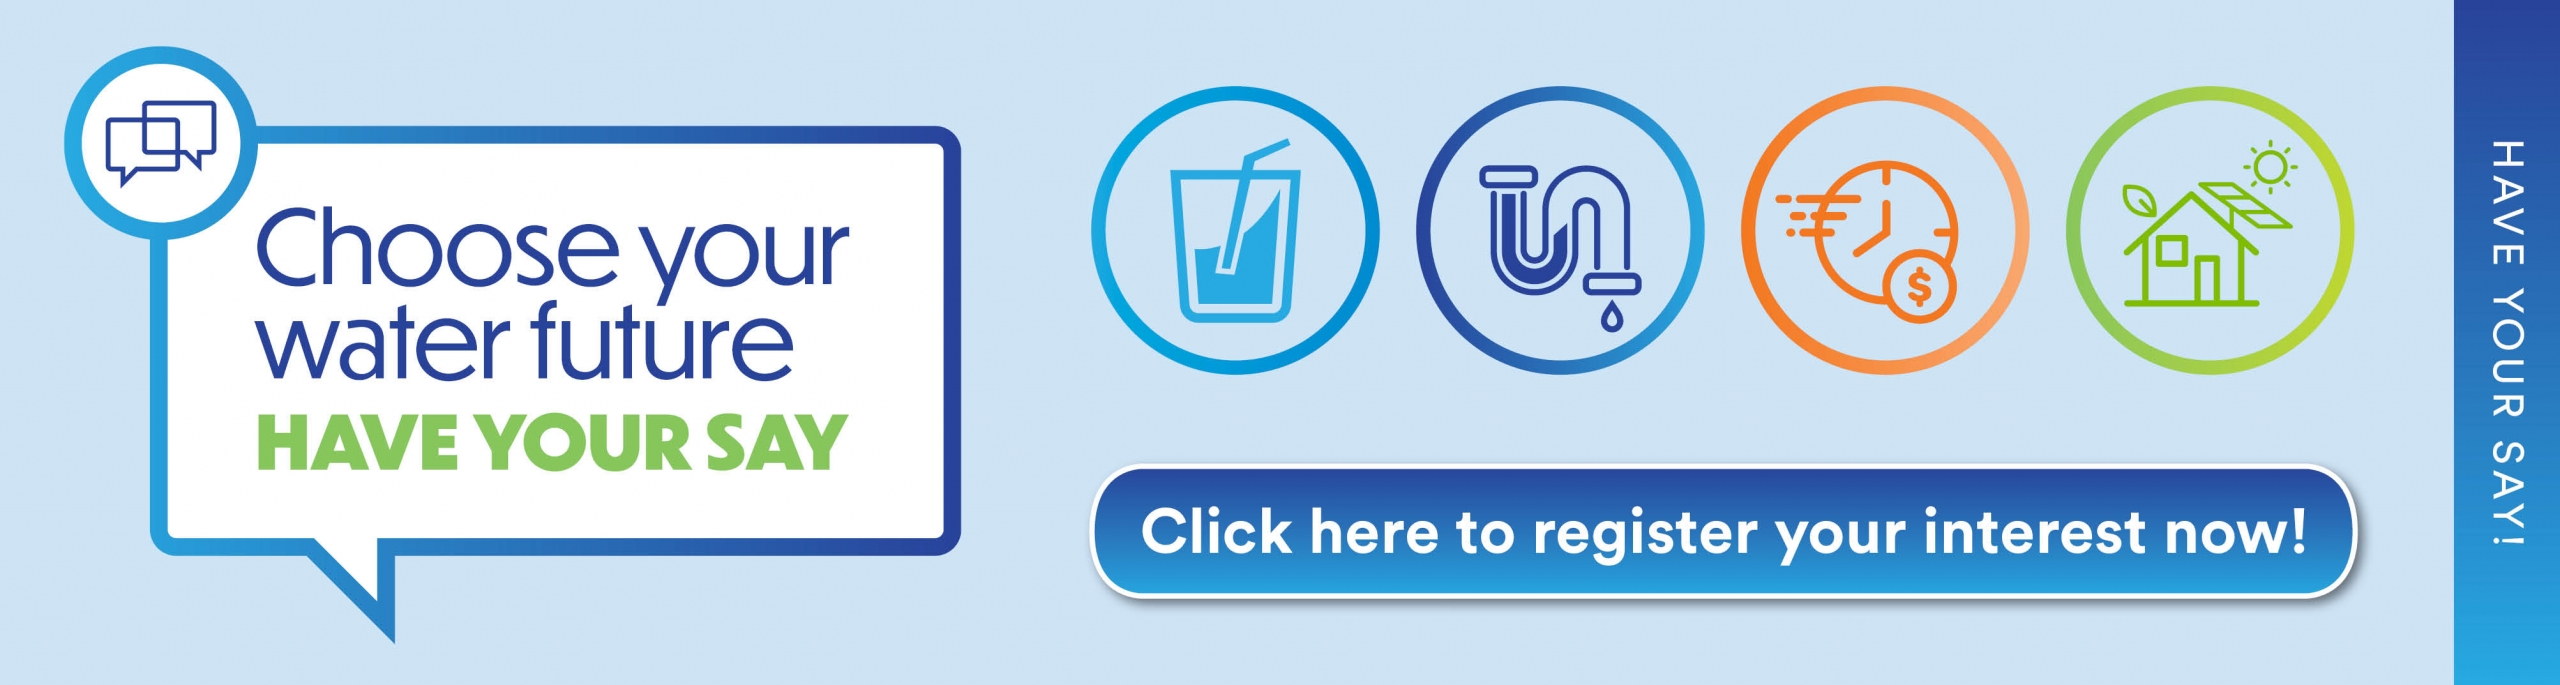 Choose your water future - Have your say - Pricing submission 2023-28